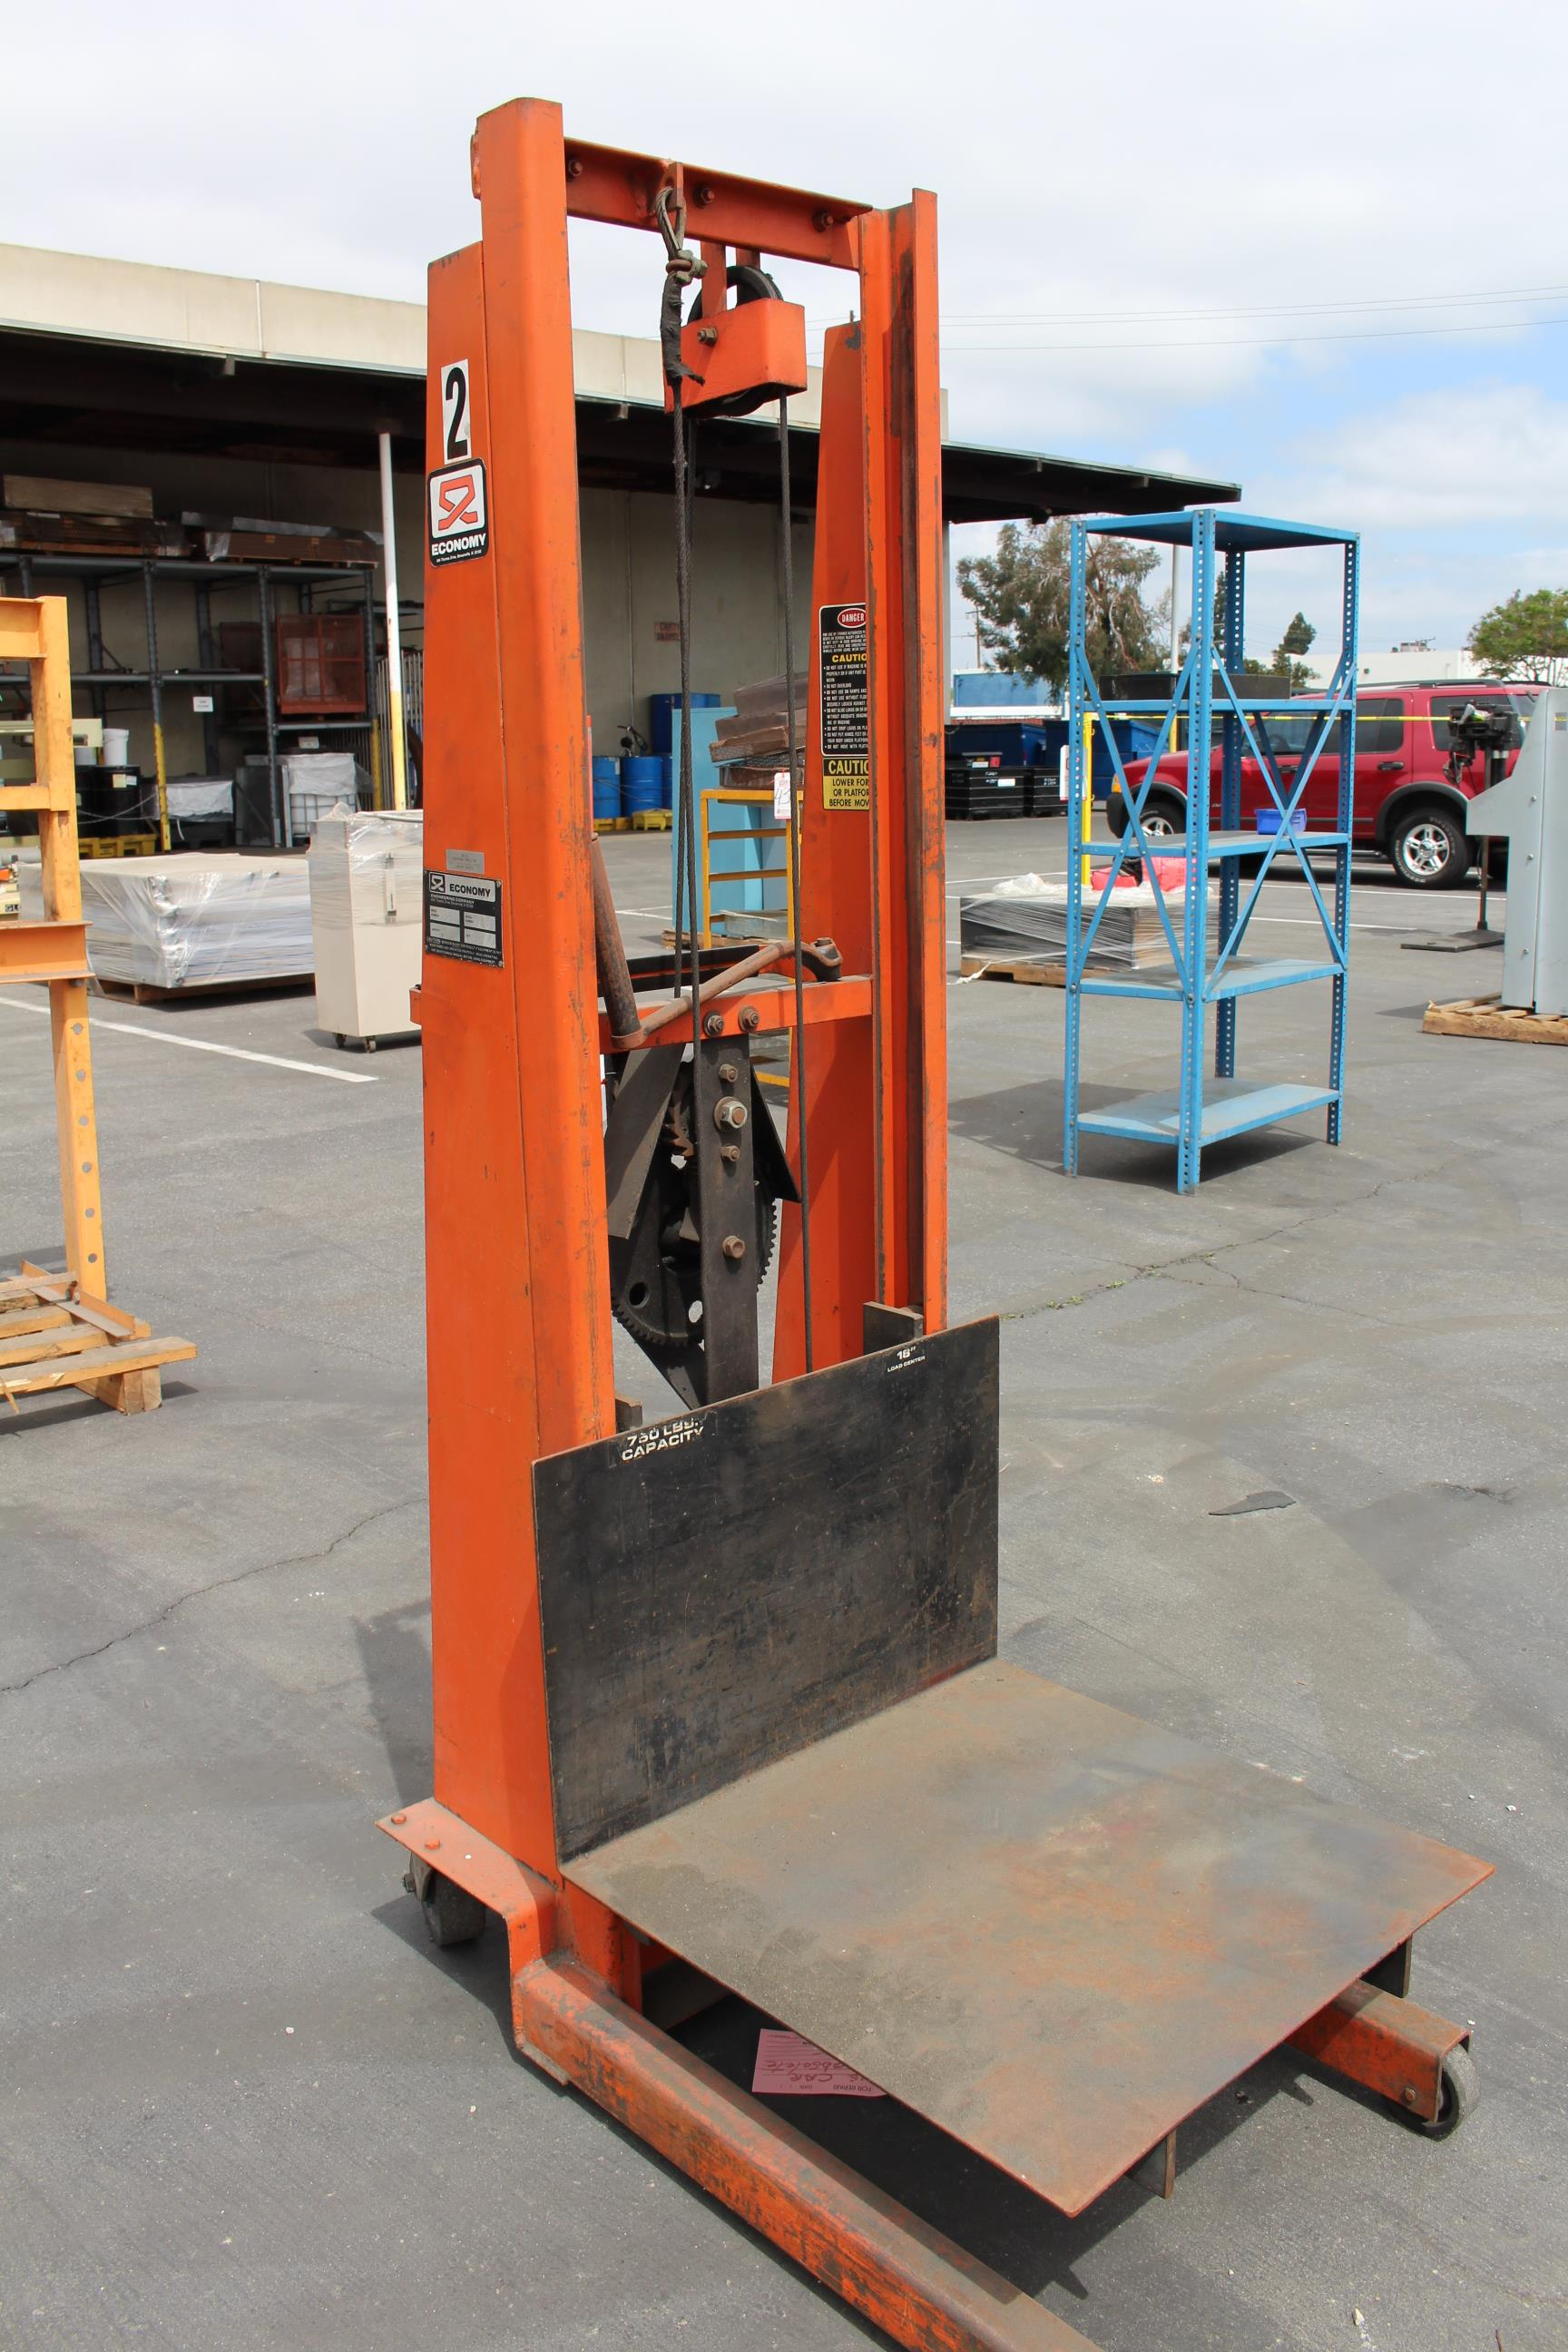 Lot 33 - ECONOMY DIE LIFT, MODEL MV-54, 750 LB CAPACITY, S/N EB48419A